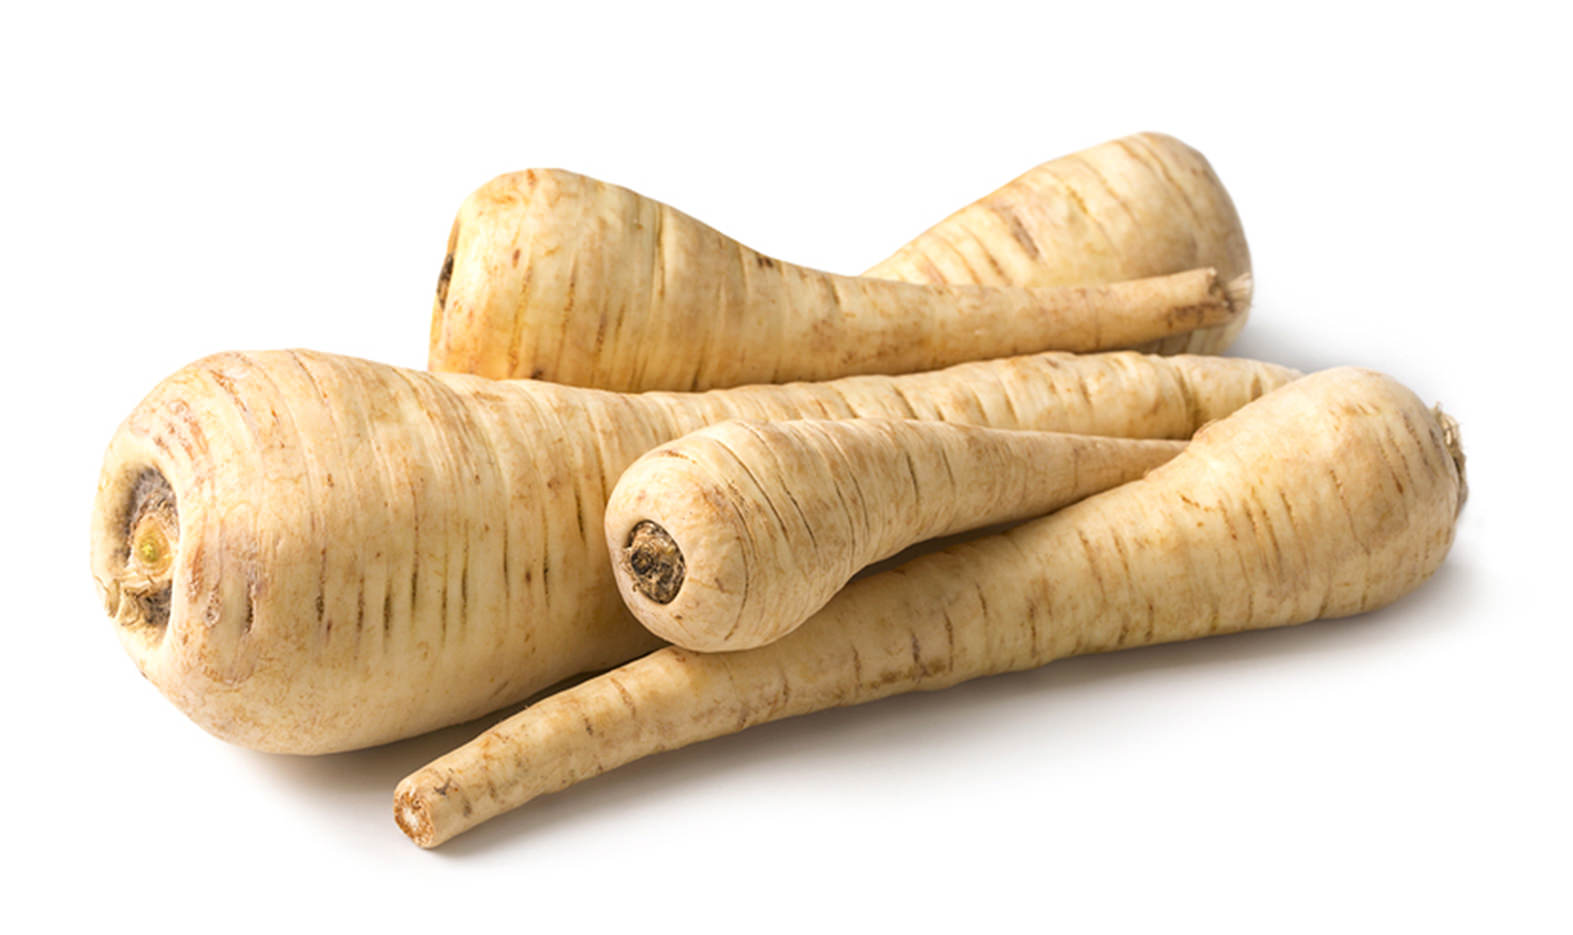 Parsnips Image